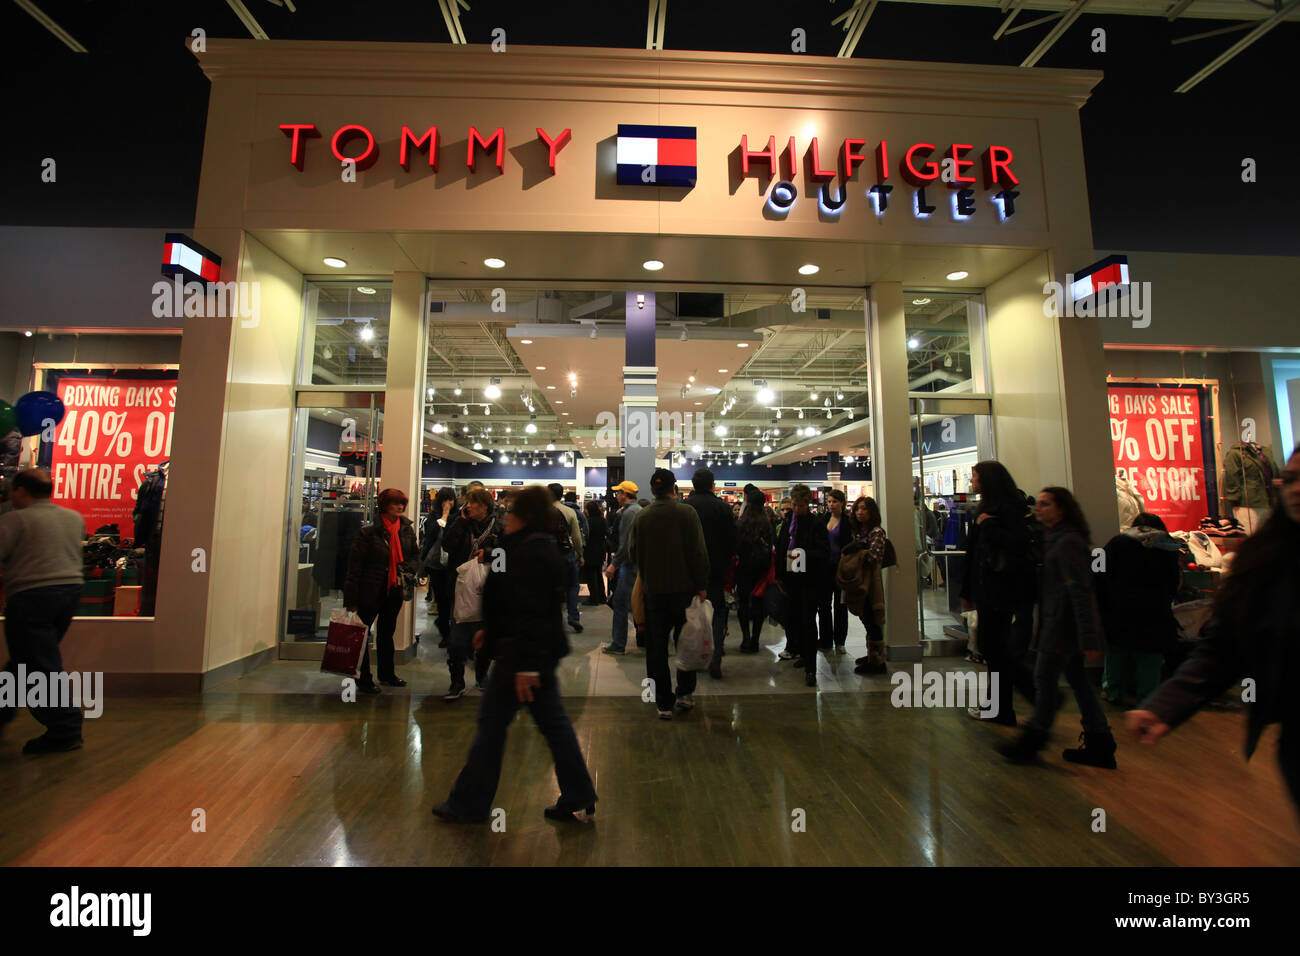 81706b96 Tommy Hilfiger outlet store in Vaughan Mills Mall in Toronto, 2010 ...